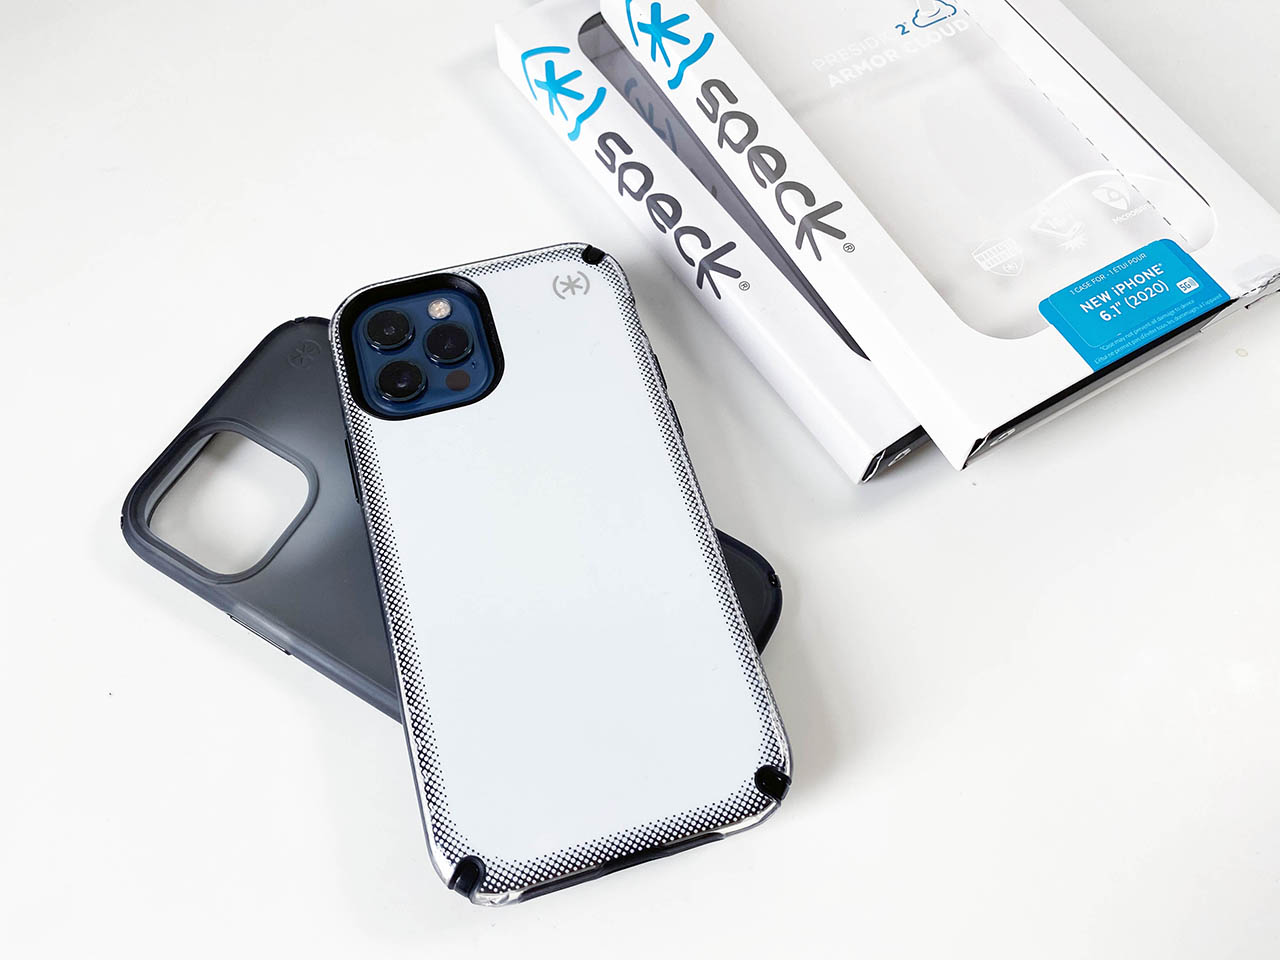 Speck Presidio: the Armor Cloud case with 'airbags'